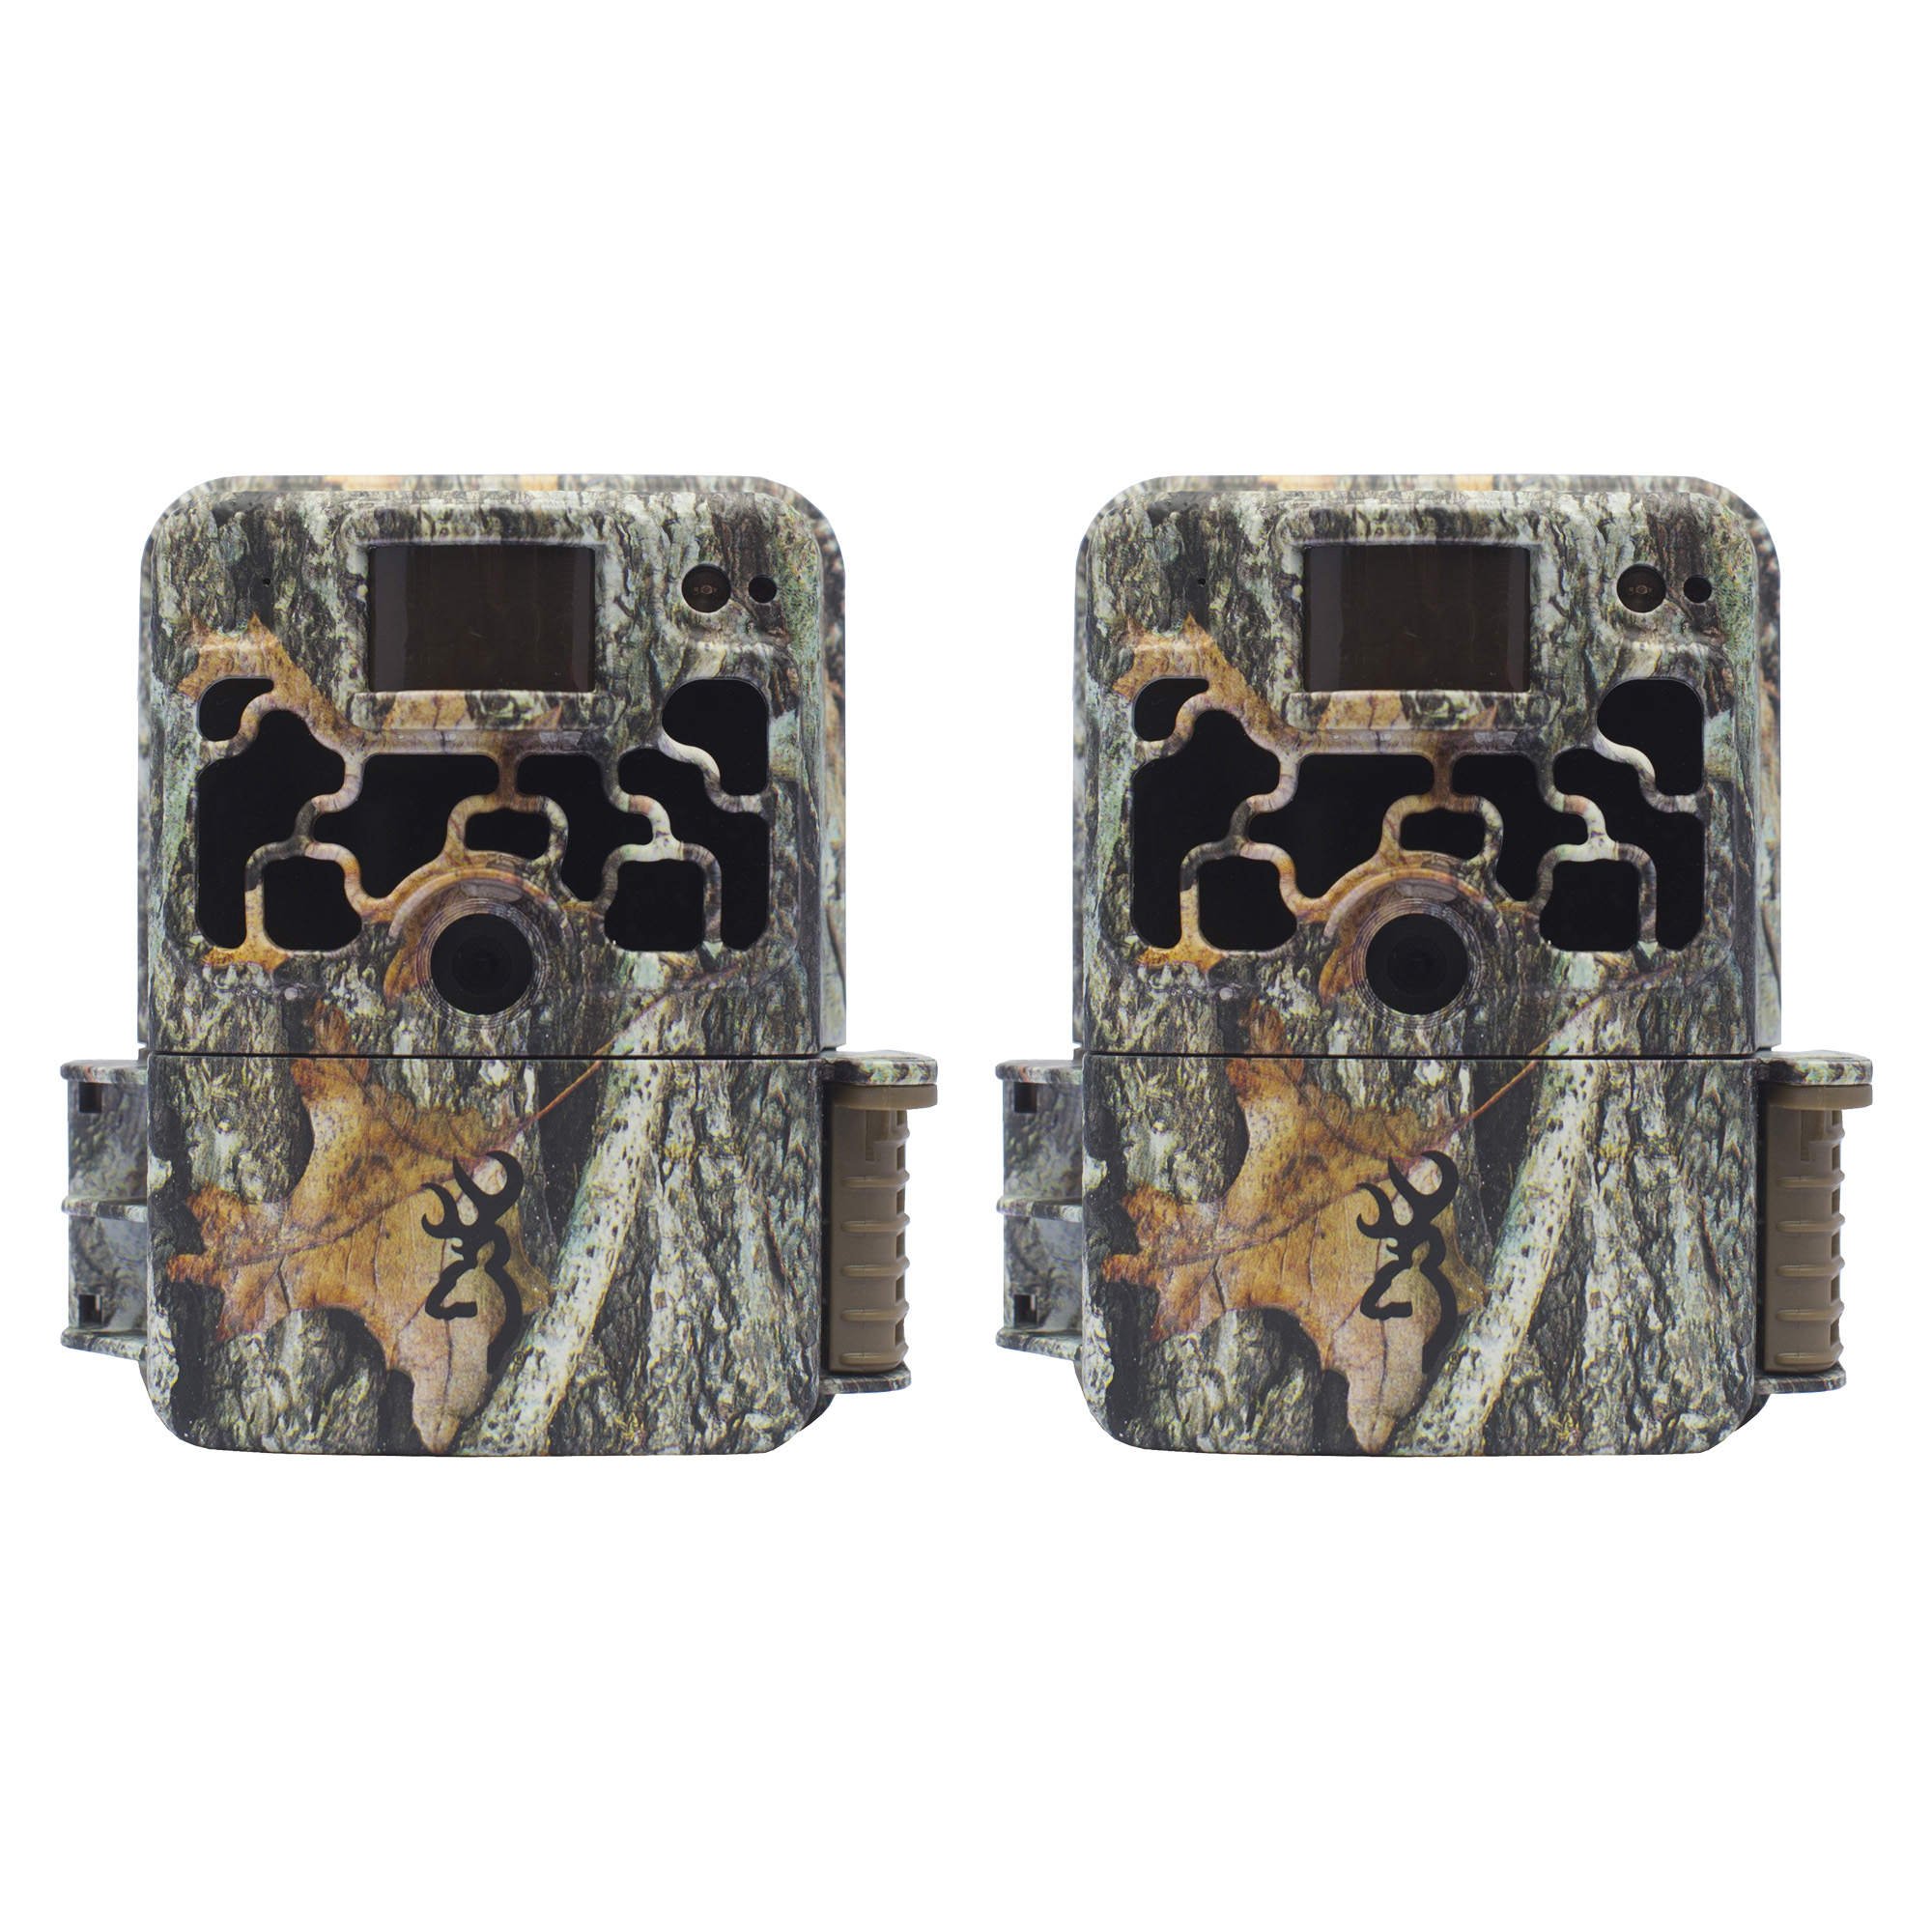 Browning Trail Cameras Dark Ops 940 16MP HD IR Game Camera, 2 Pack | BTC-6HD-940 by Browning Trail Cameras